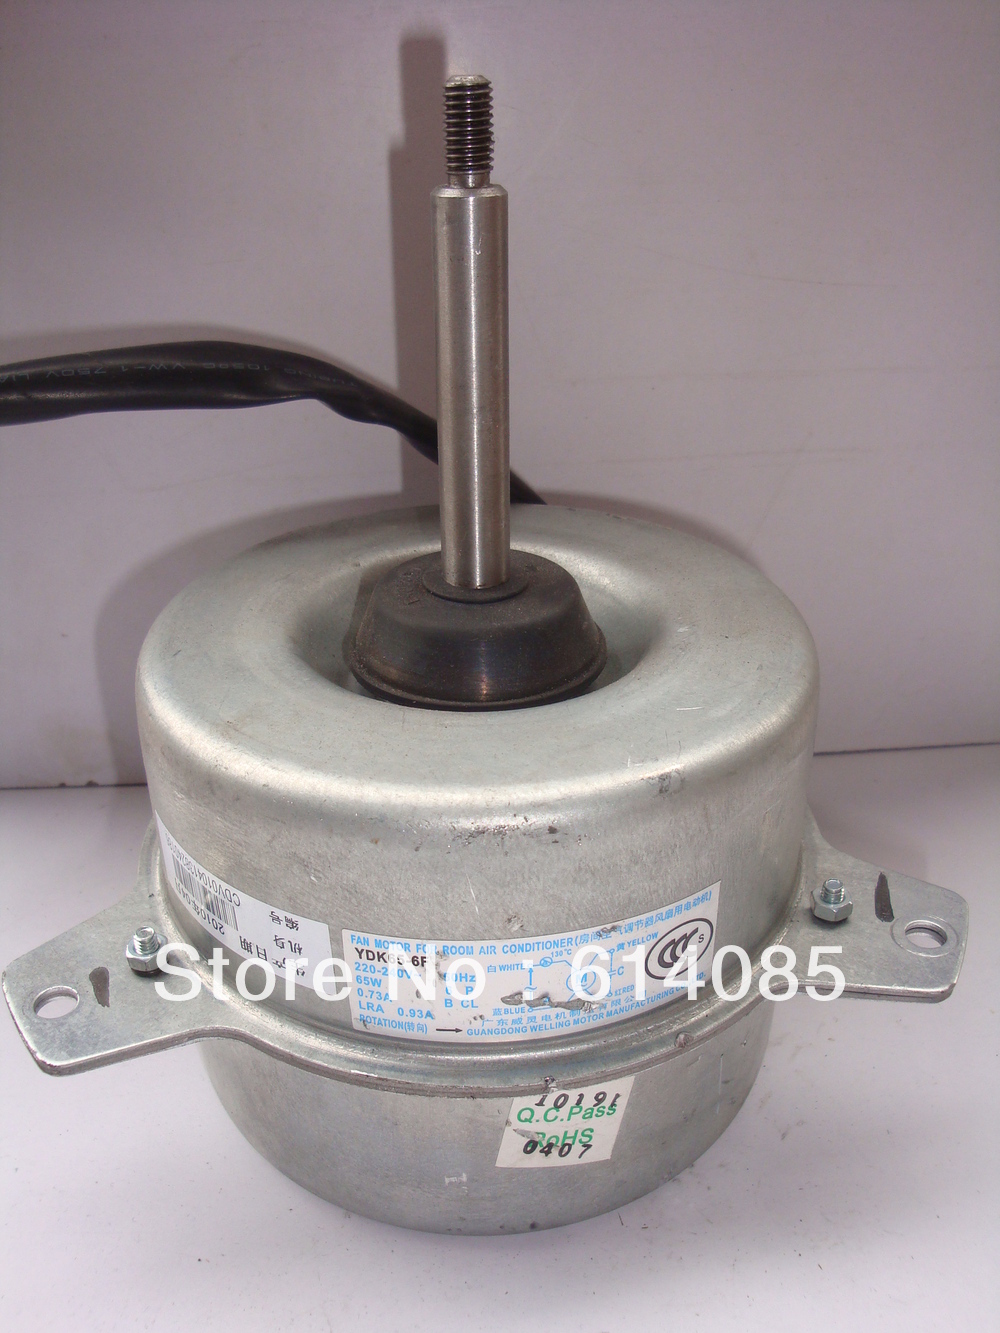 Air Conditioner Fan Motor Ydk65 6f In Air Conditioner